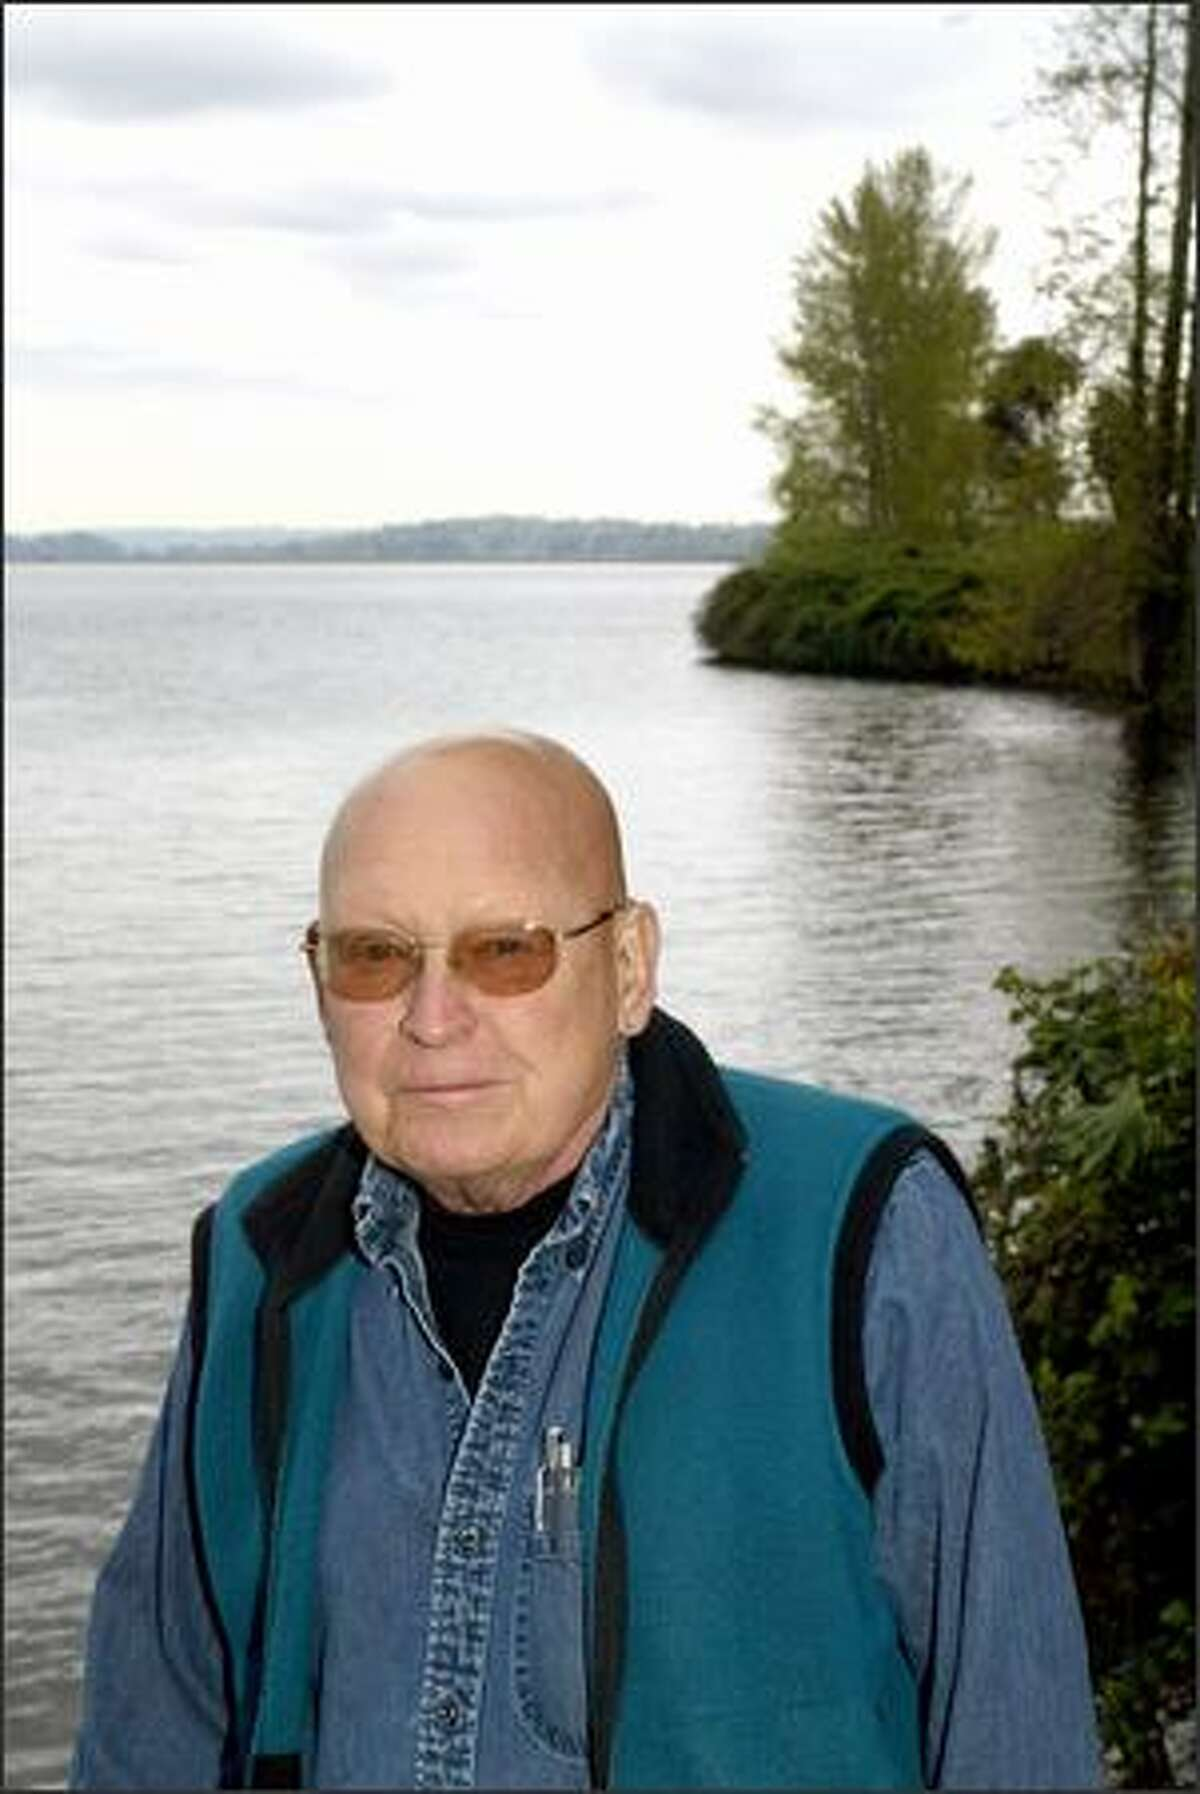 John Davidson, nearly 80 years old, walks at least a mile a day, frequently two, on the slopes of Lake Washington.